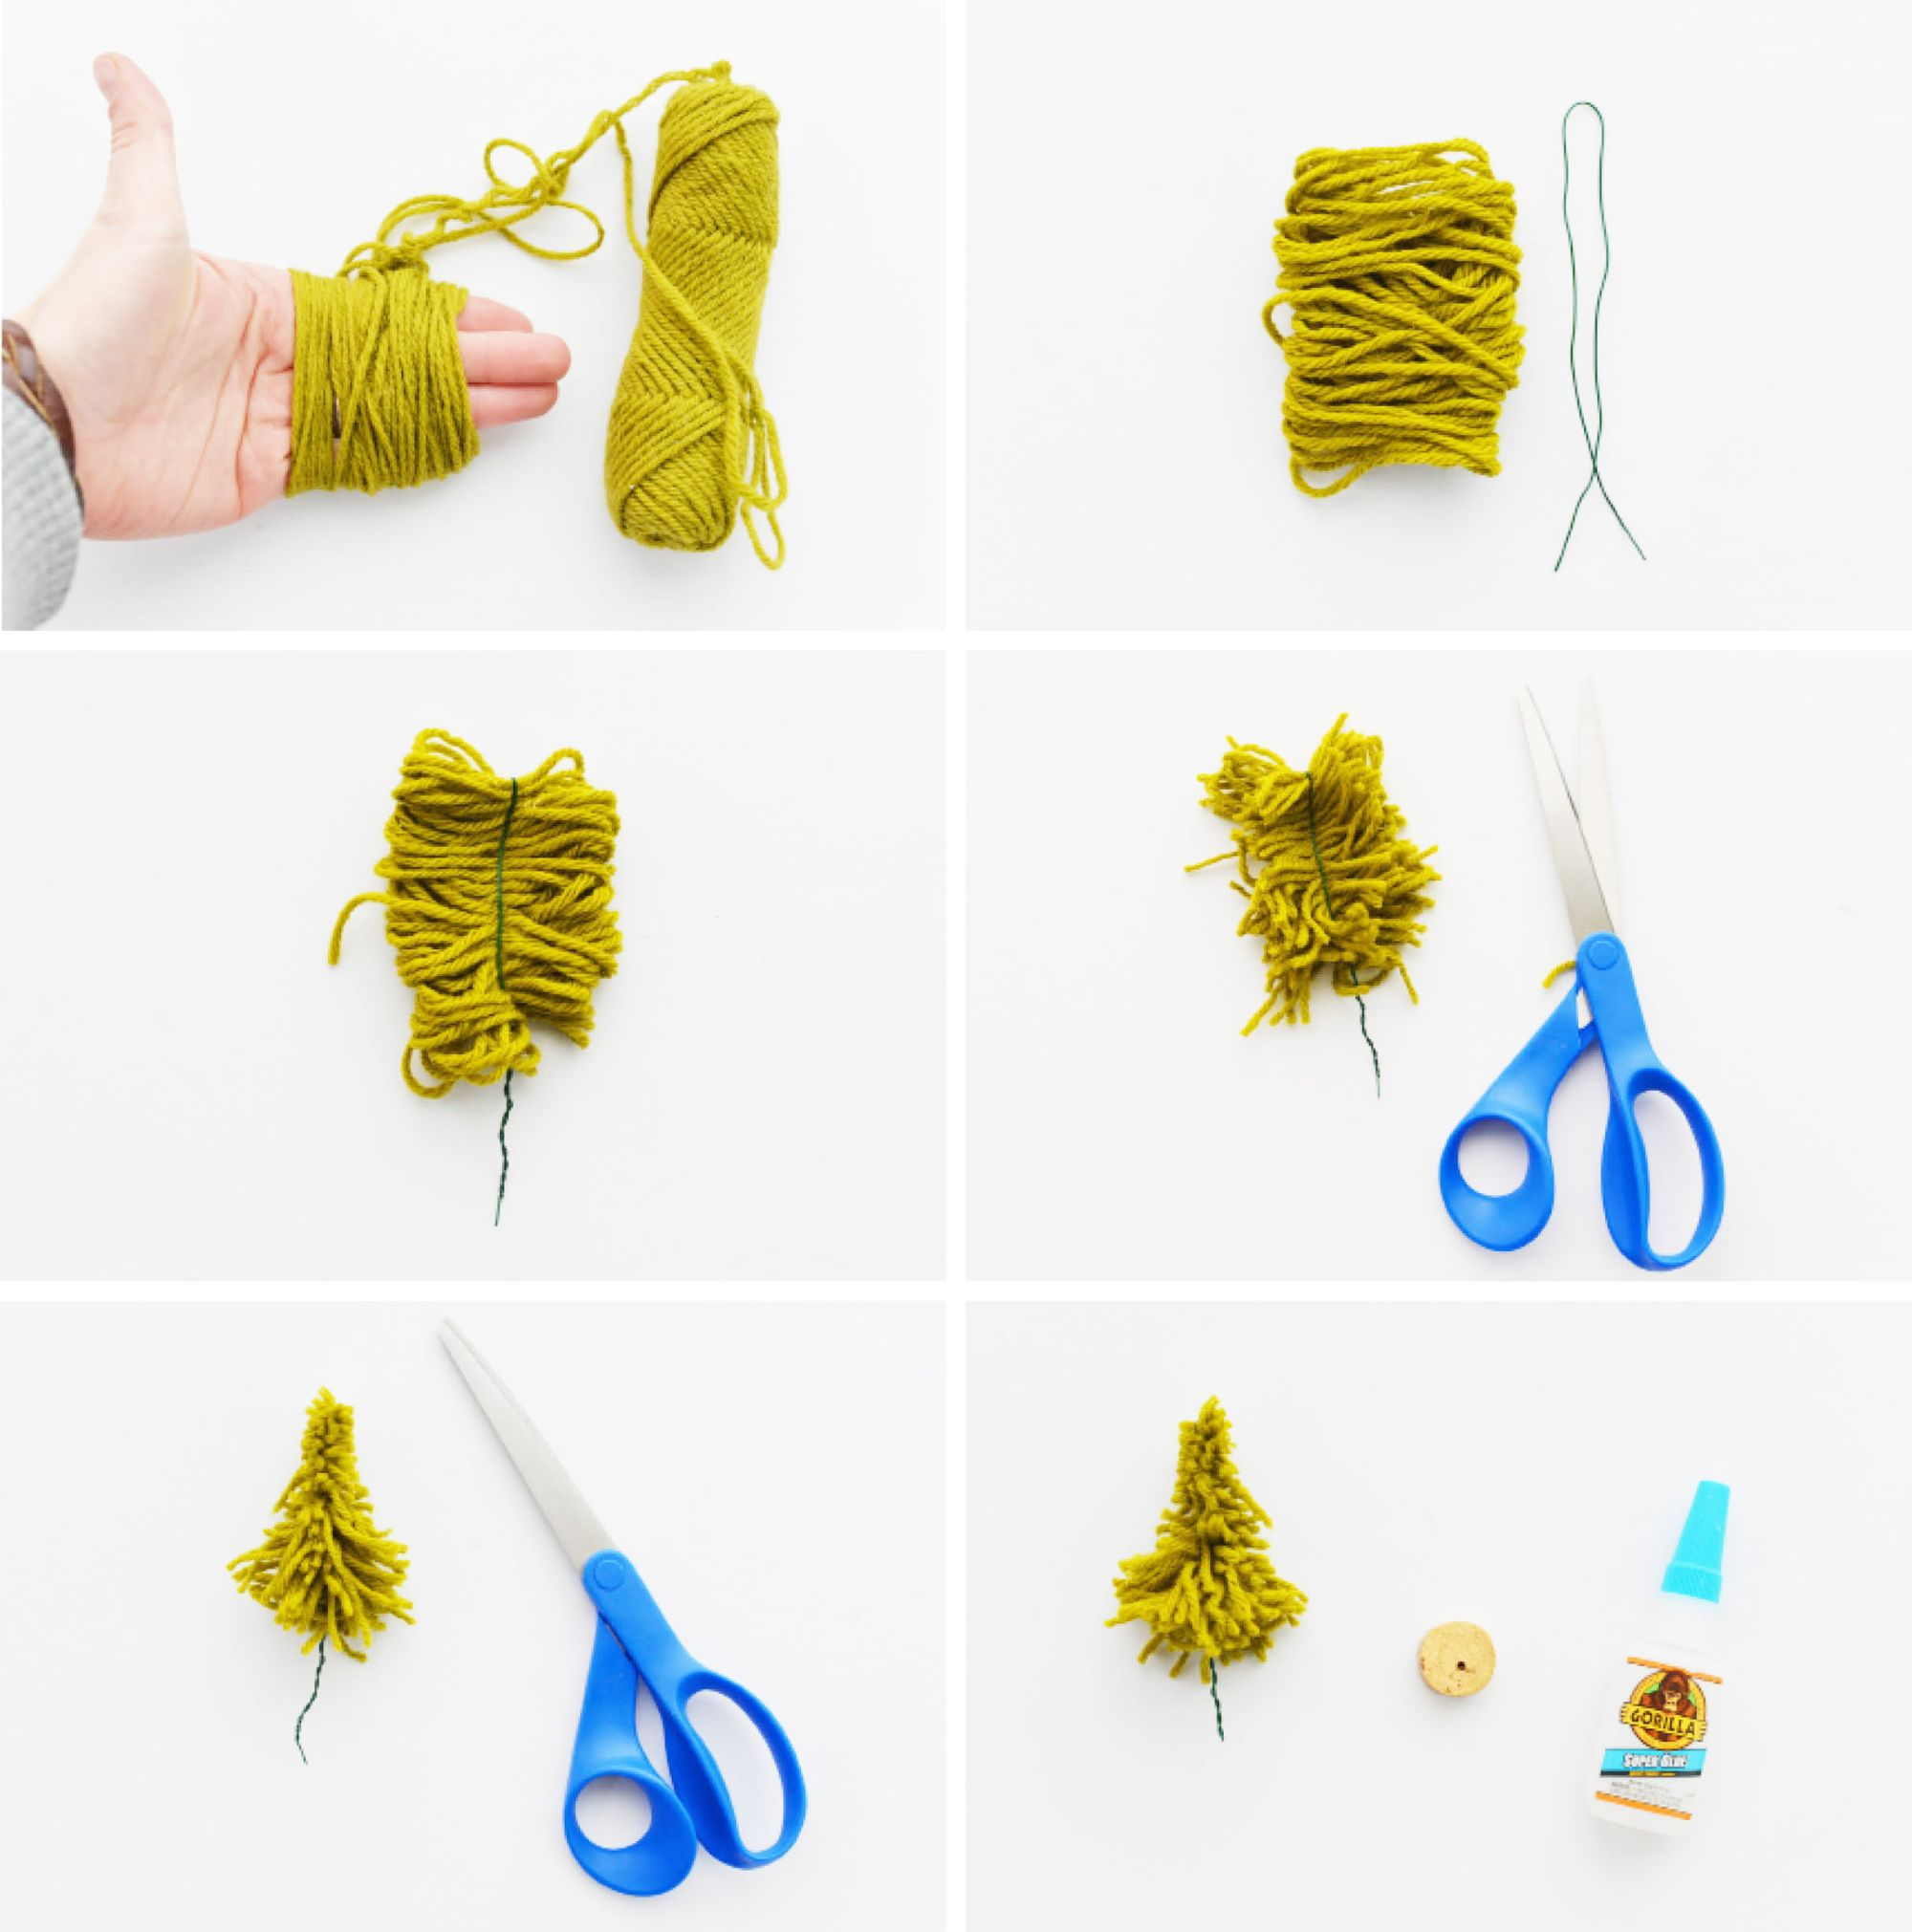 DIY Mini Yarn Trees Instructions